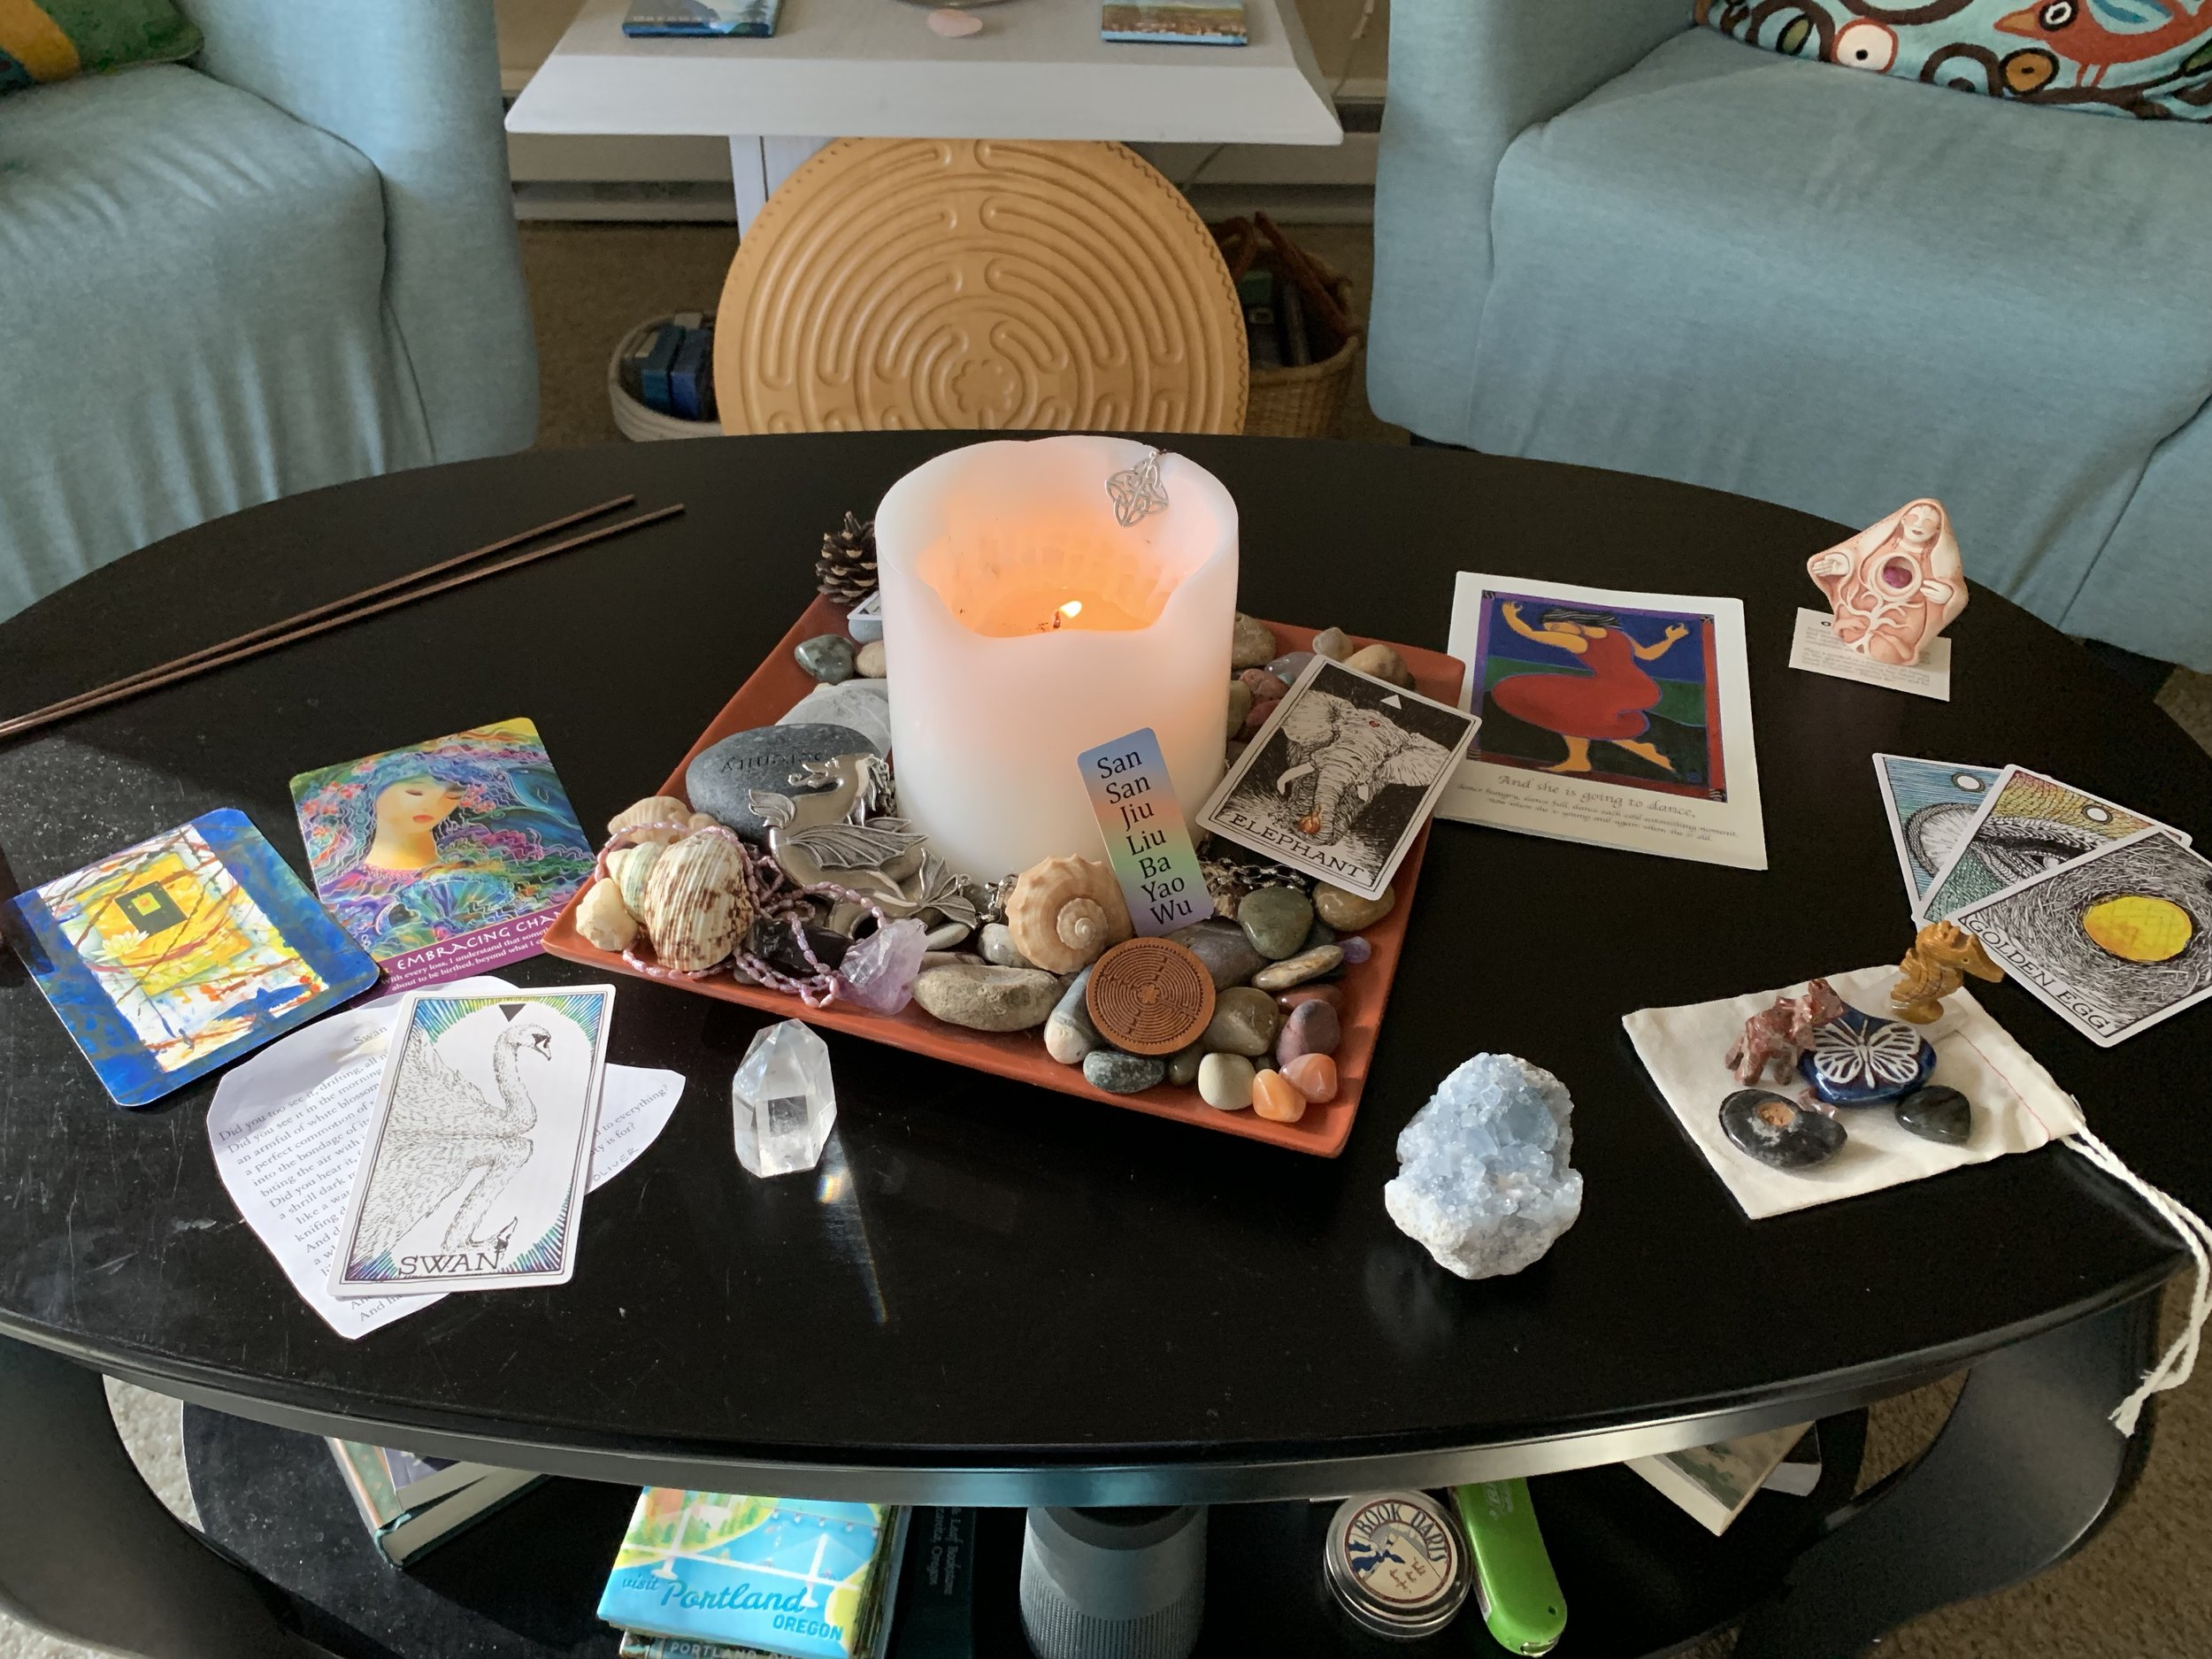 My Sojourn With Grief meditation table. It grew over time. This was close to the end of my time at home and close to leaving for Scotland, my first stop.